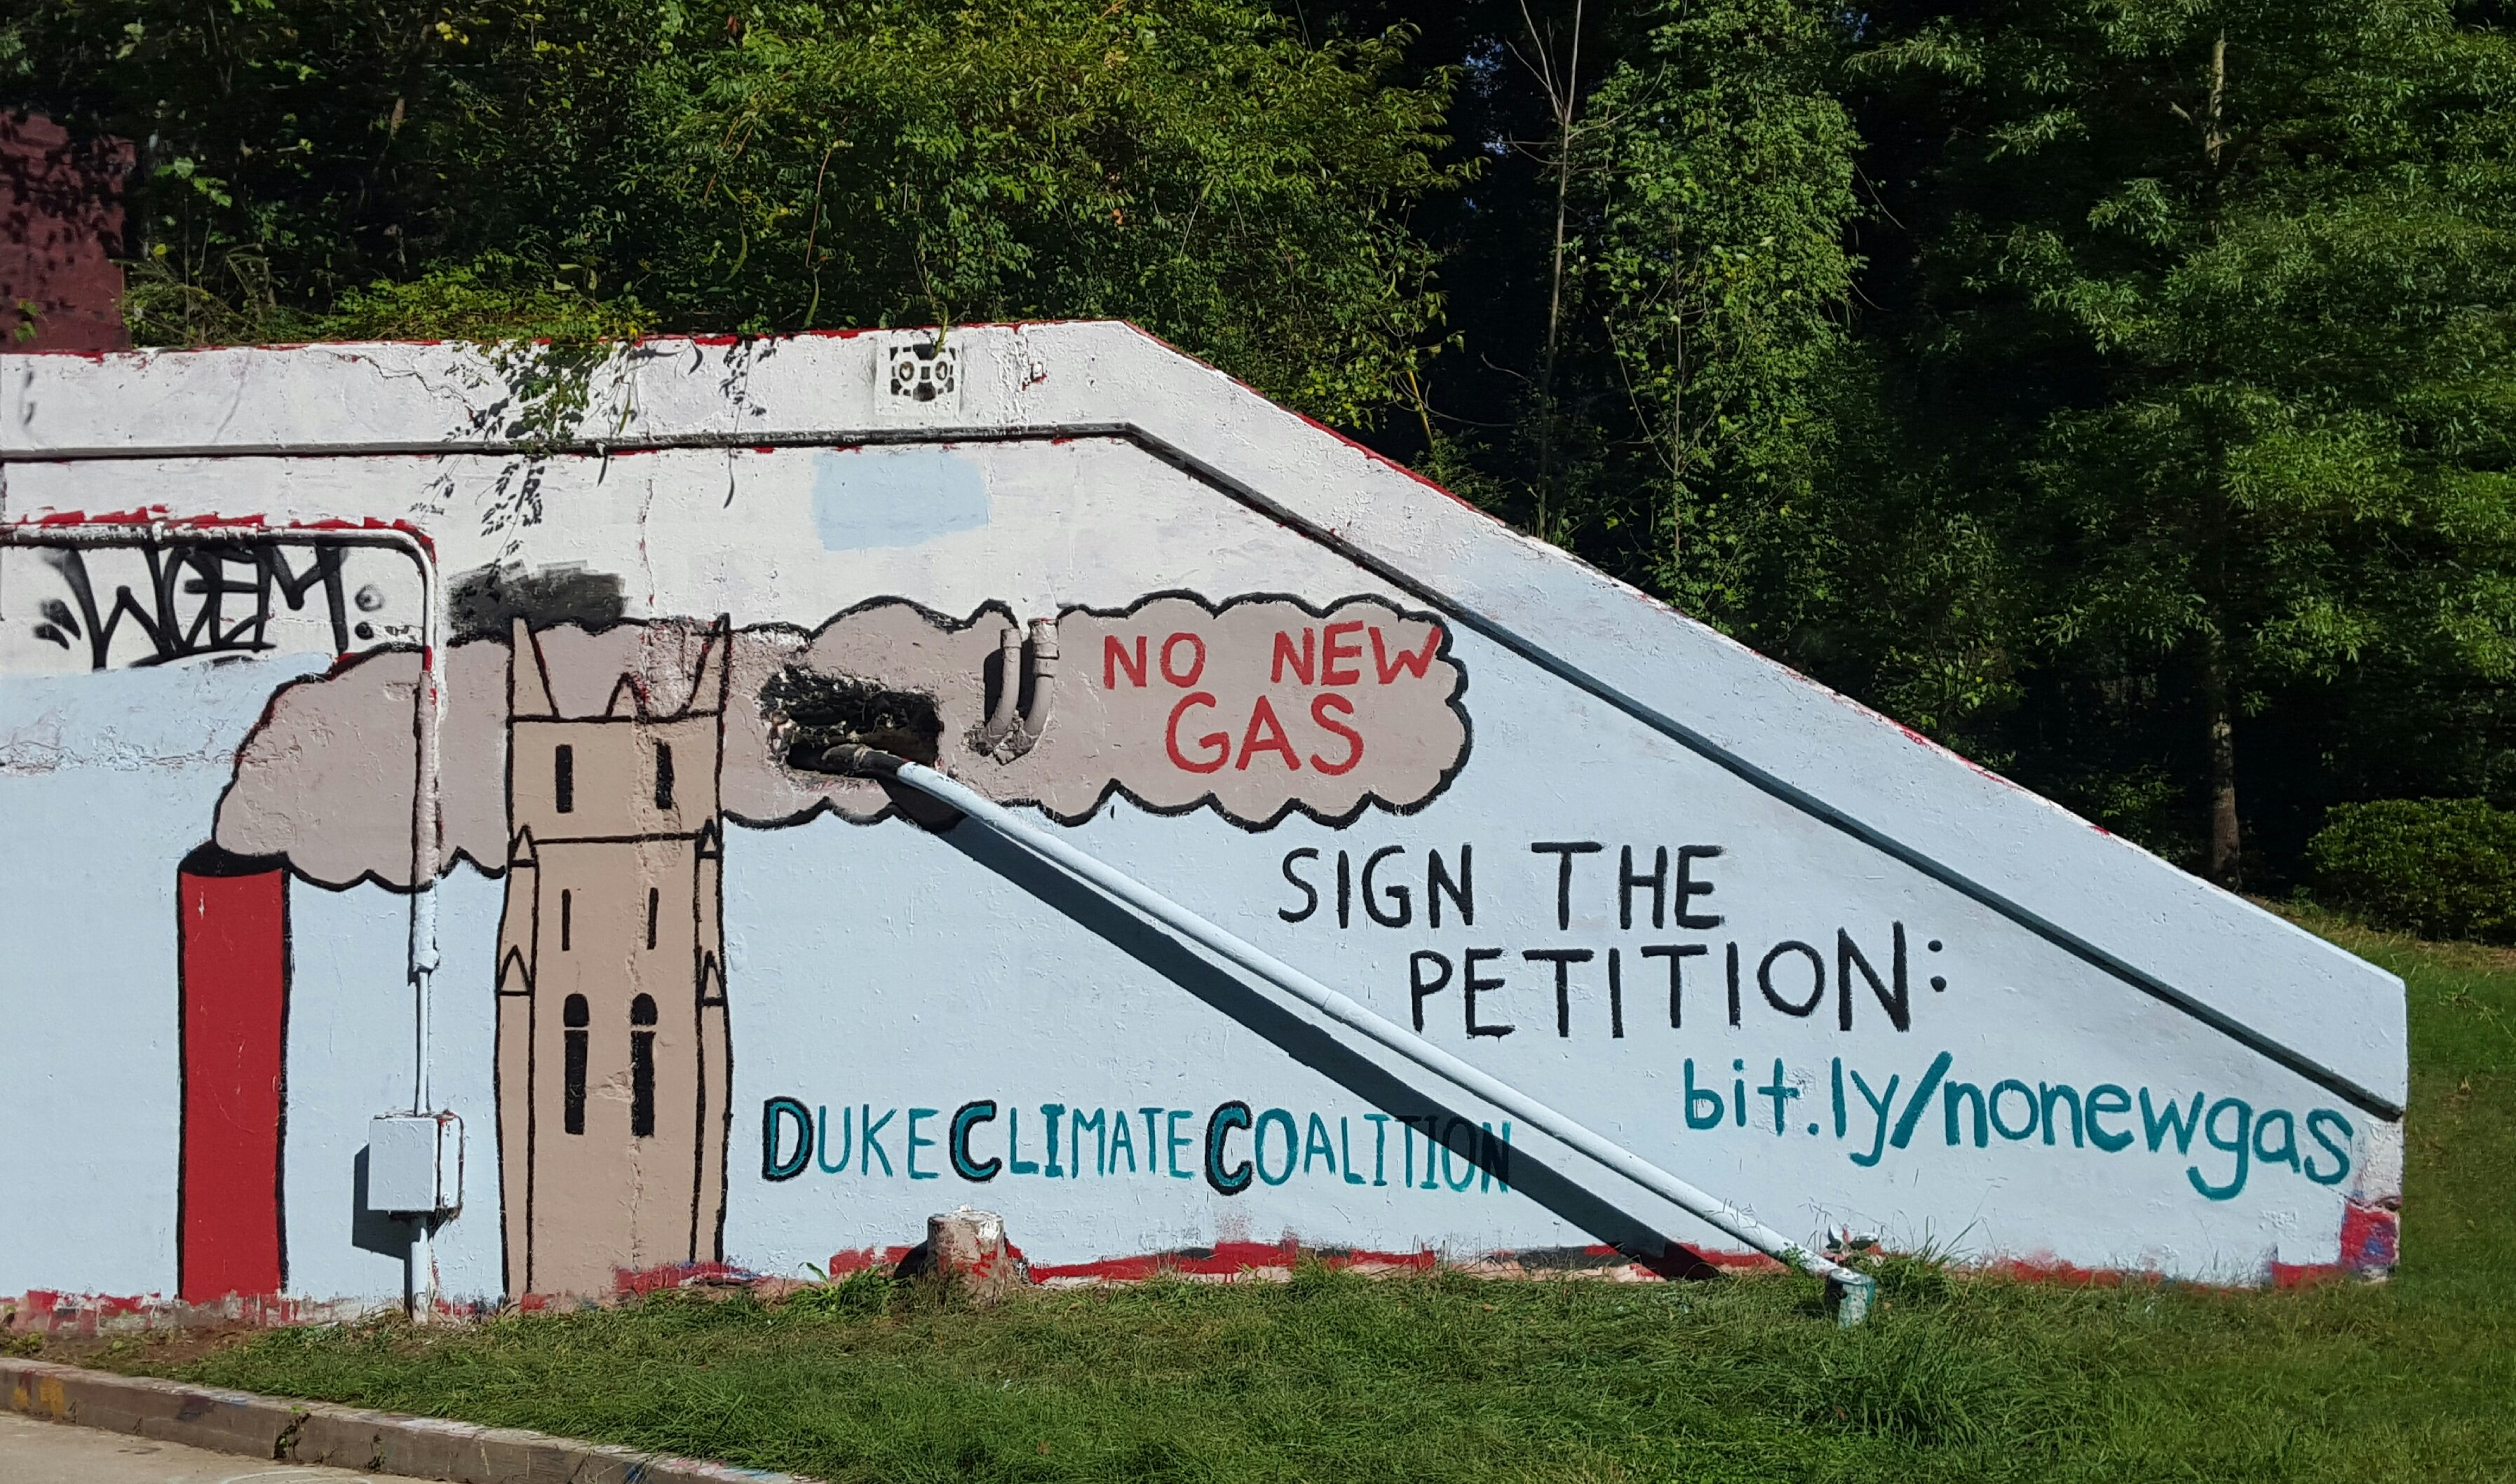 Duke Climate Coalition painted the tunnel on their campus to spread awareness for their campaign 'No New Gas'